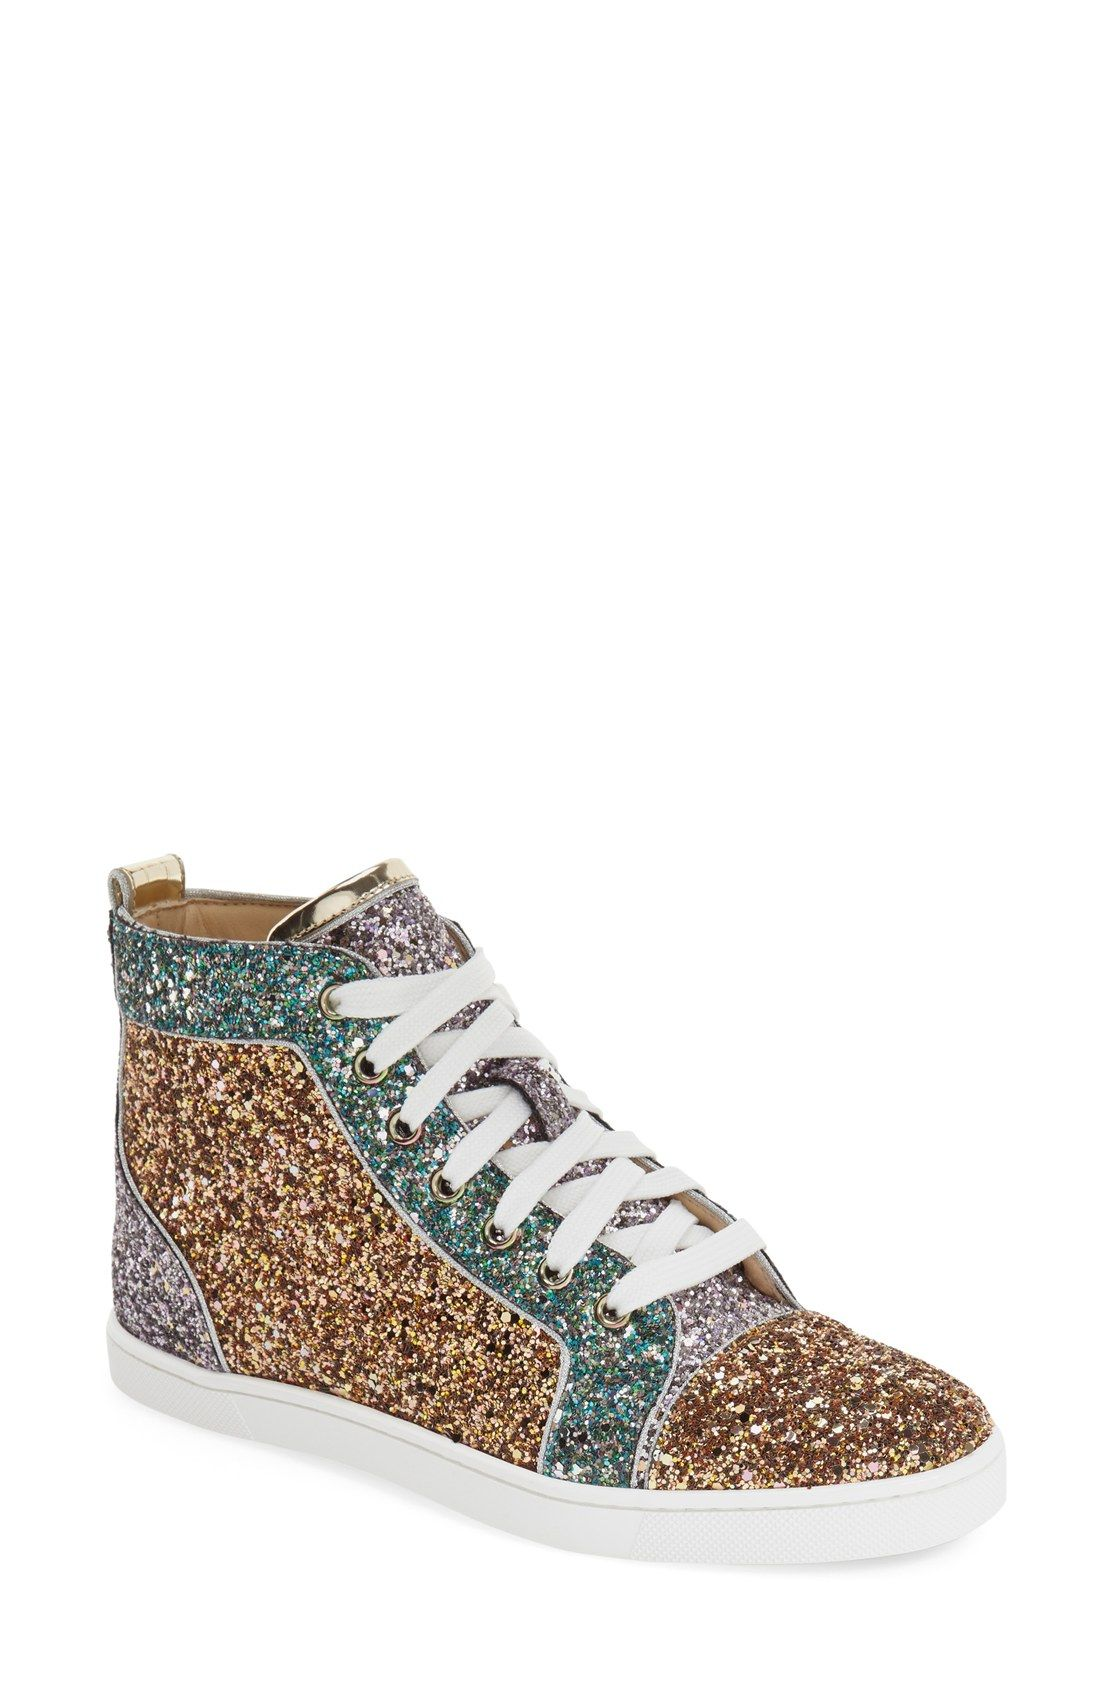 christian louboutin bip bip glitter high top sneakers